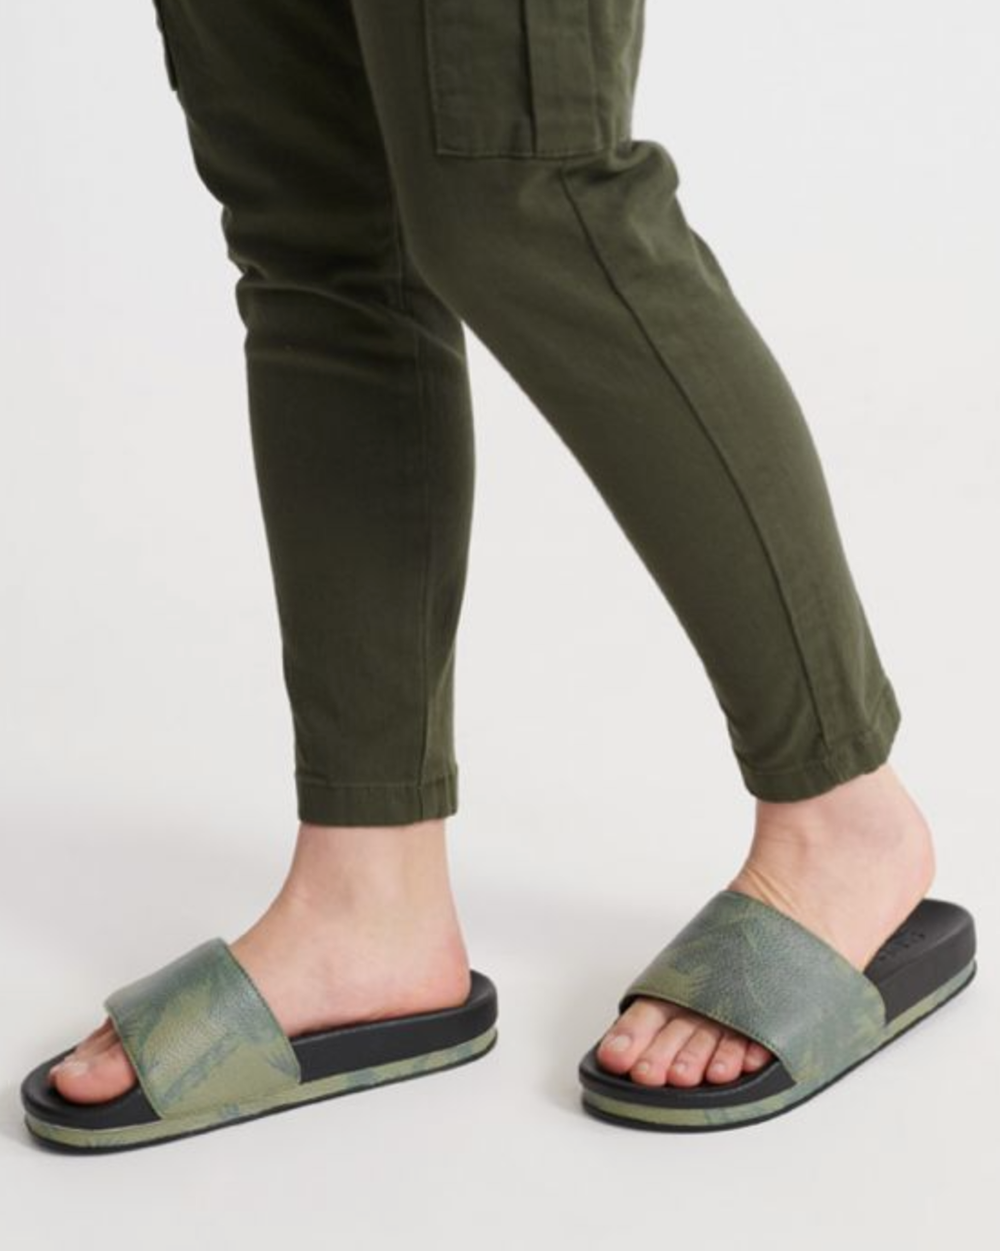 Superdry Arizona High Flatform Slide - Green/Black